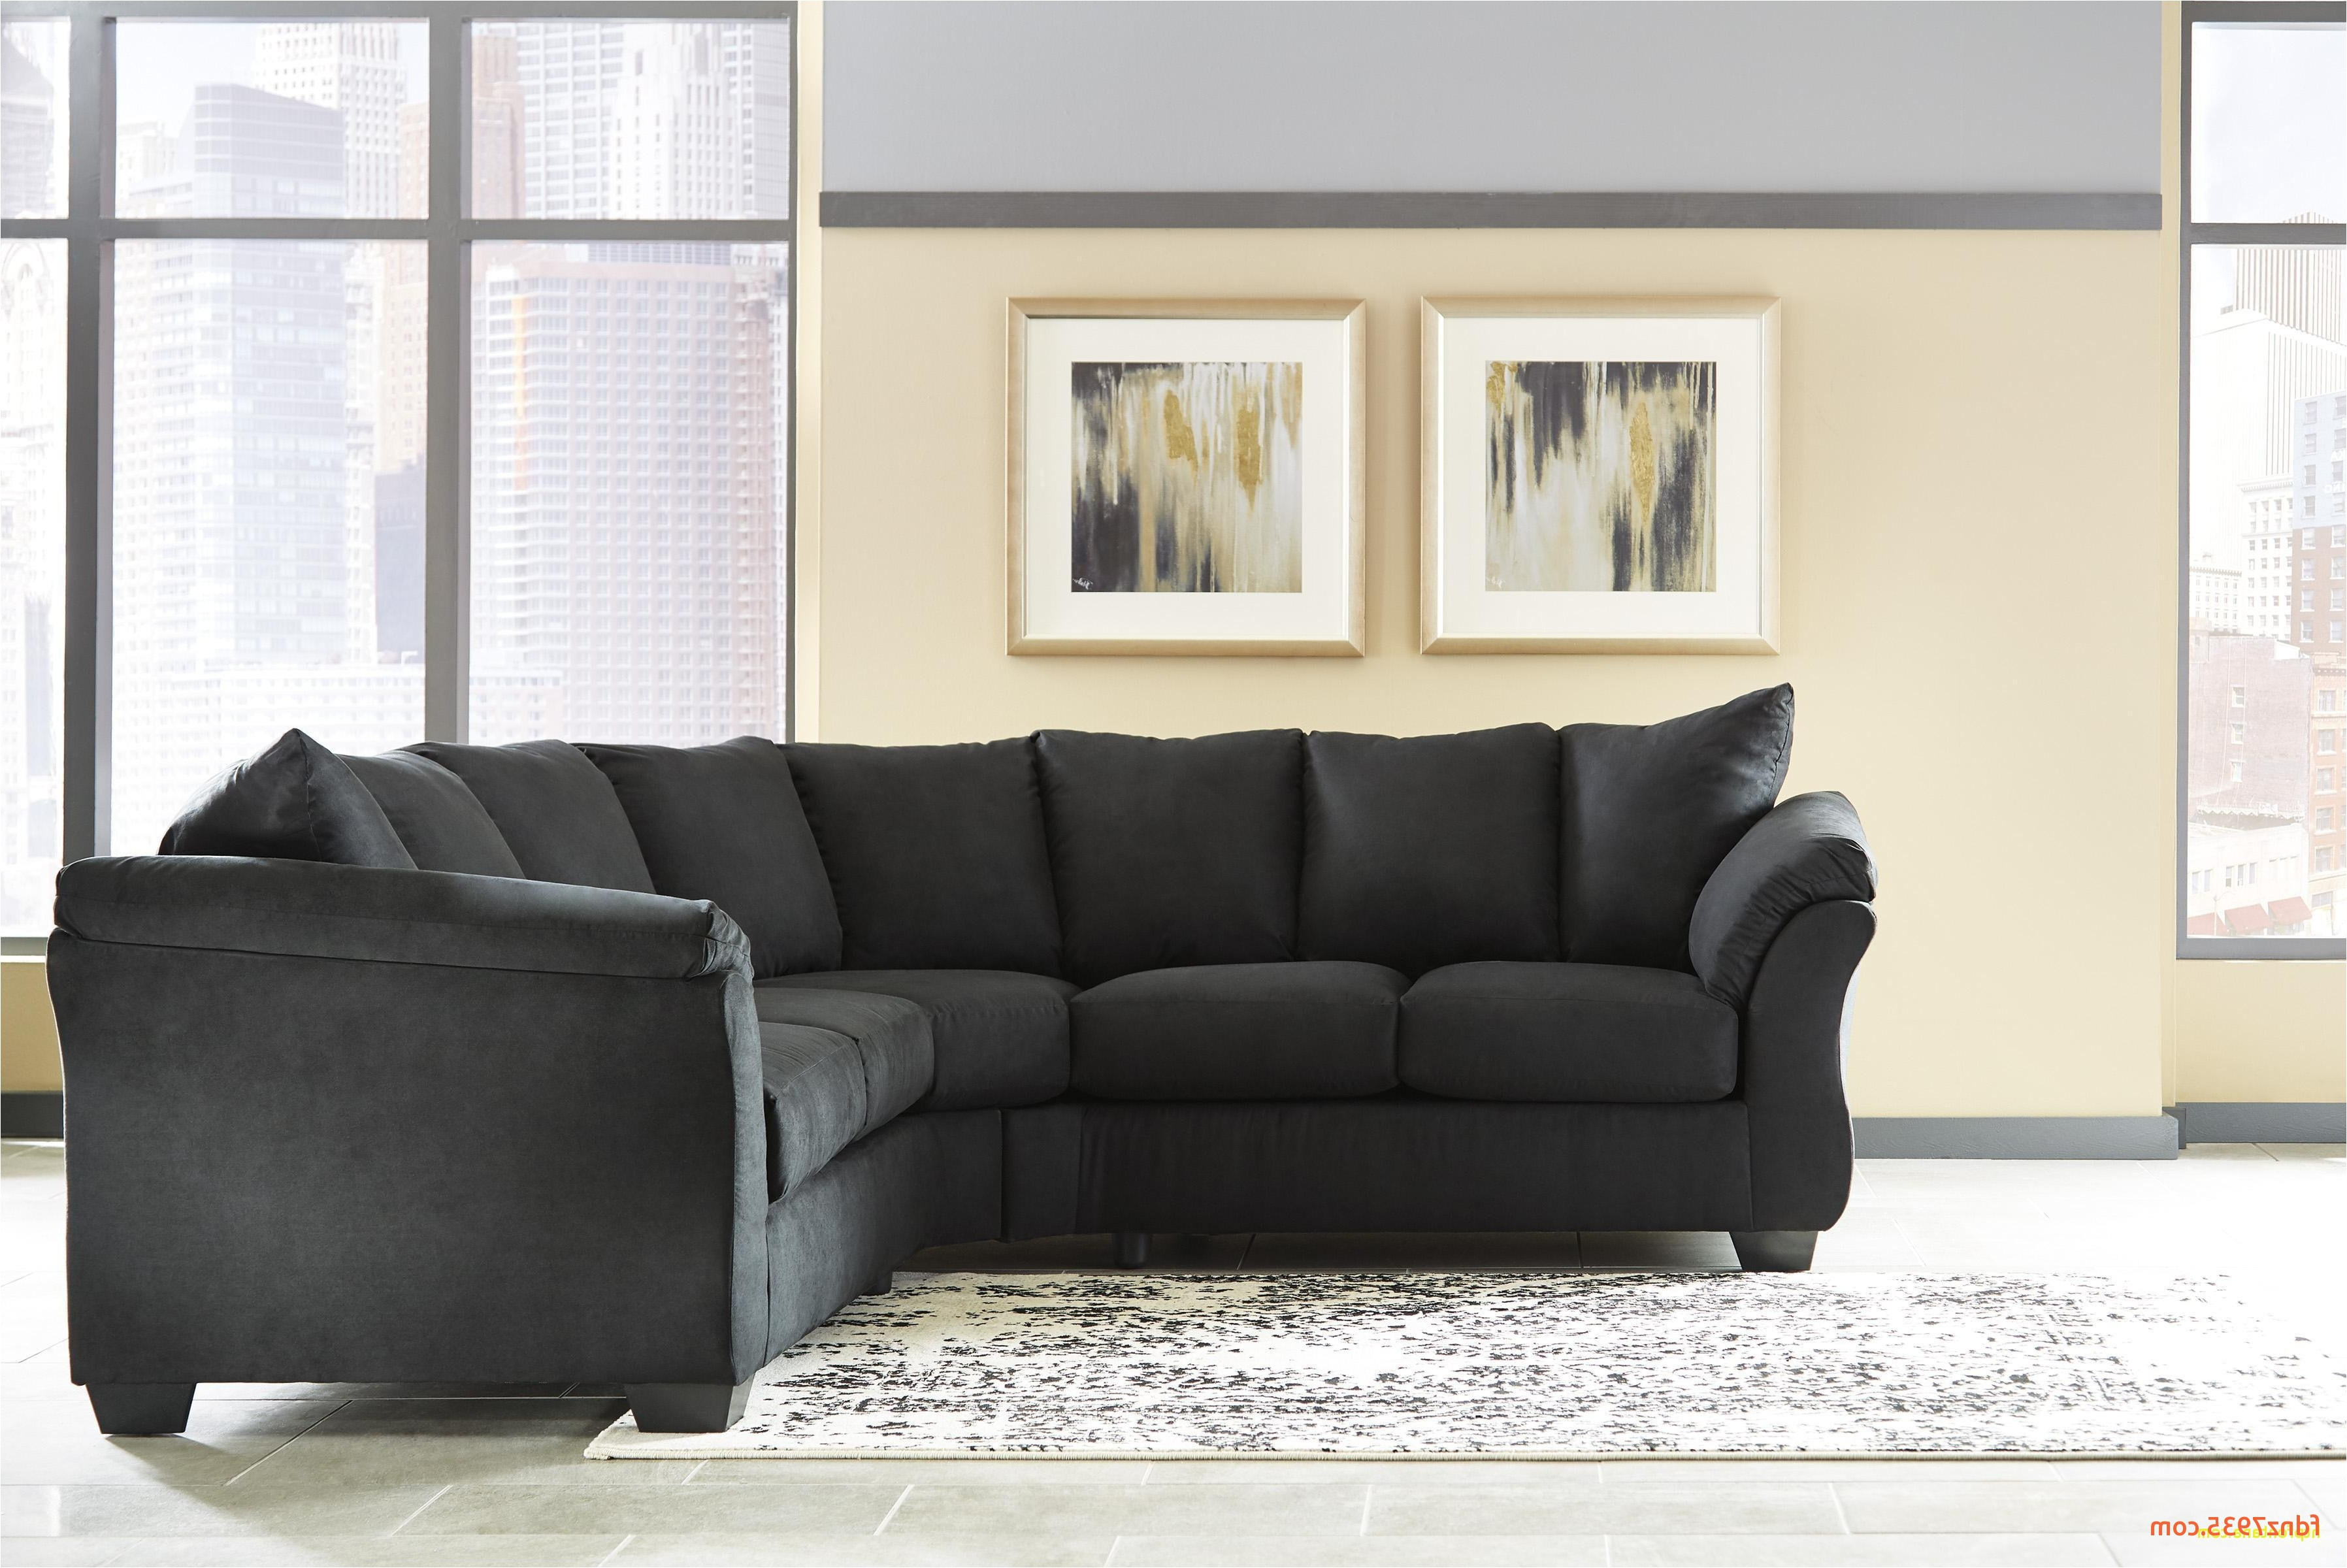 2019 Tenny Dark Grey 2 Piece Right Facing Chaise Sectionals With 2 Headrest Intended For Stylish Casual Classic Steel Piece Sectional Sofa Denali Rc (View 1 of 20)